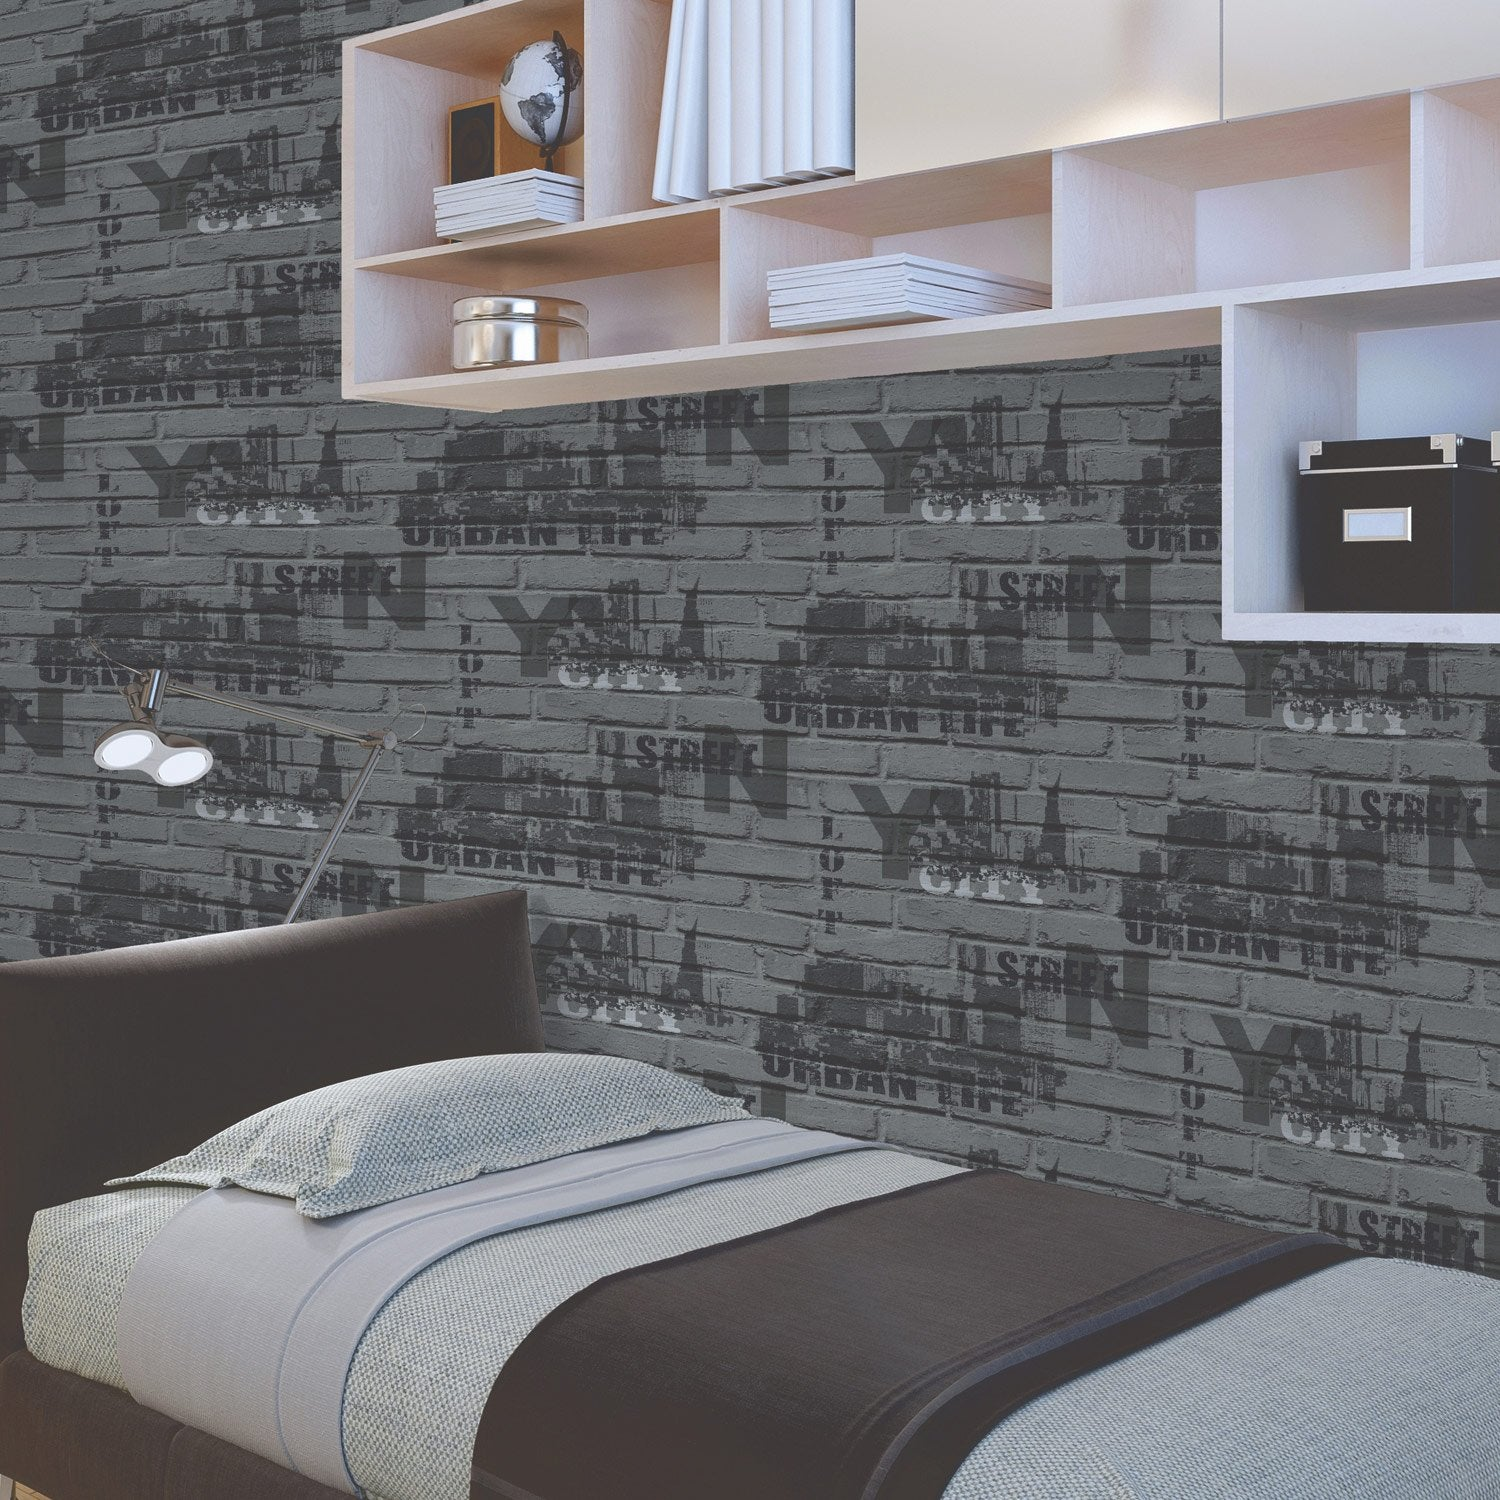 papier peint papier brique loft typo gris fonc leroy merlin. Black Bedroom Furniture Sets. Home Design Ideas